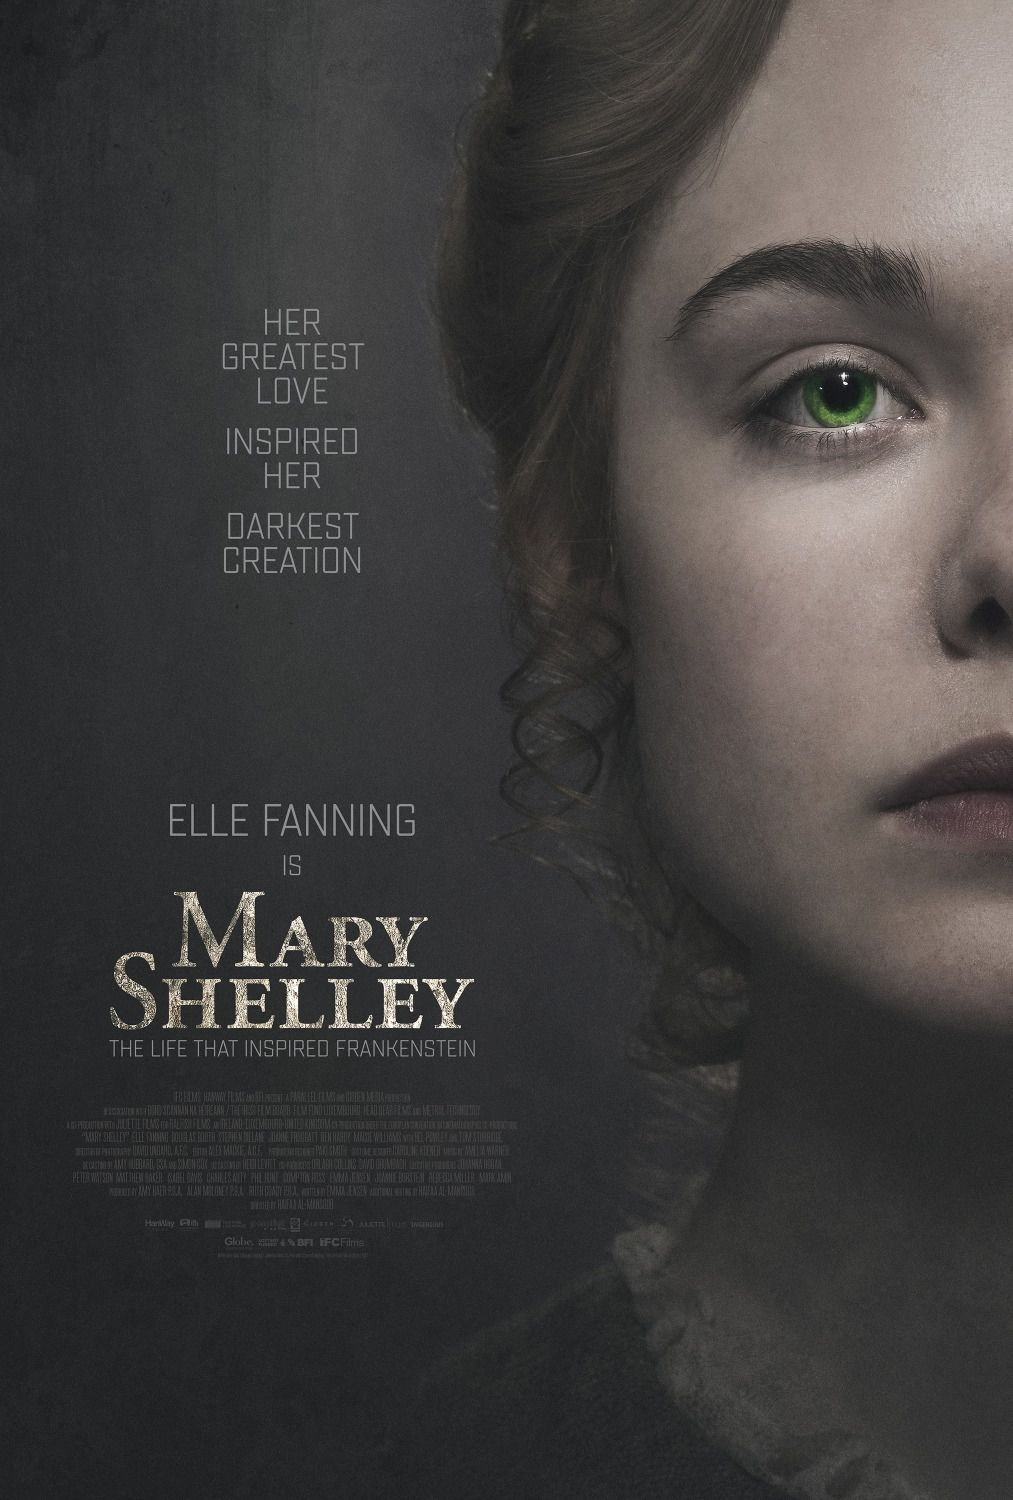 Mary Shelley - Her greatest love inspired her darkest creation - Cast: Elle Fanning, Douglas Booth, Bel Powley, Maisie Williams green eyes poster 2018